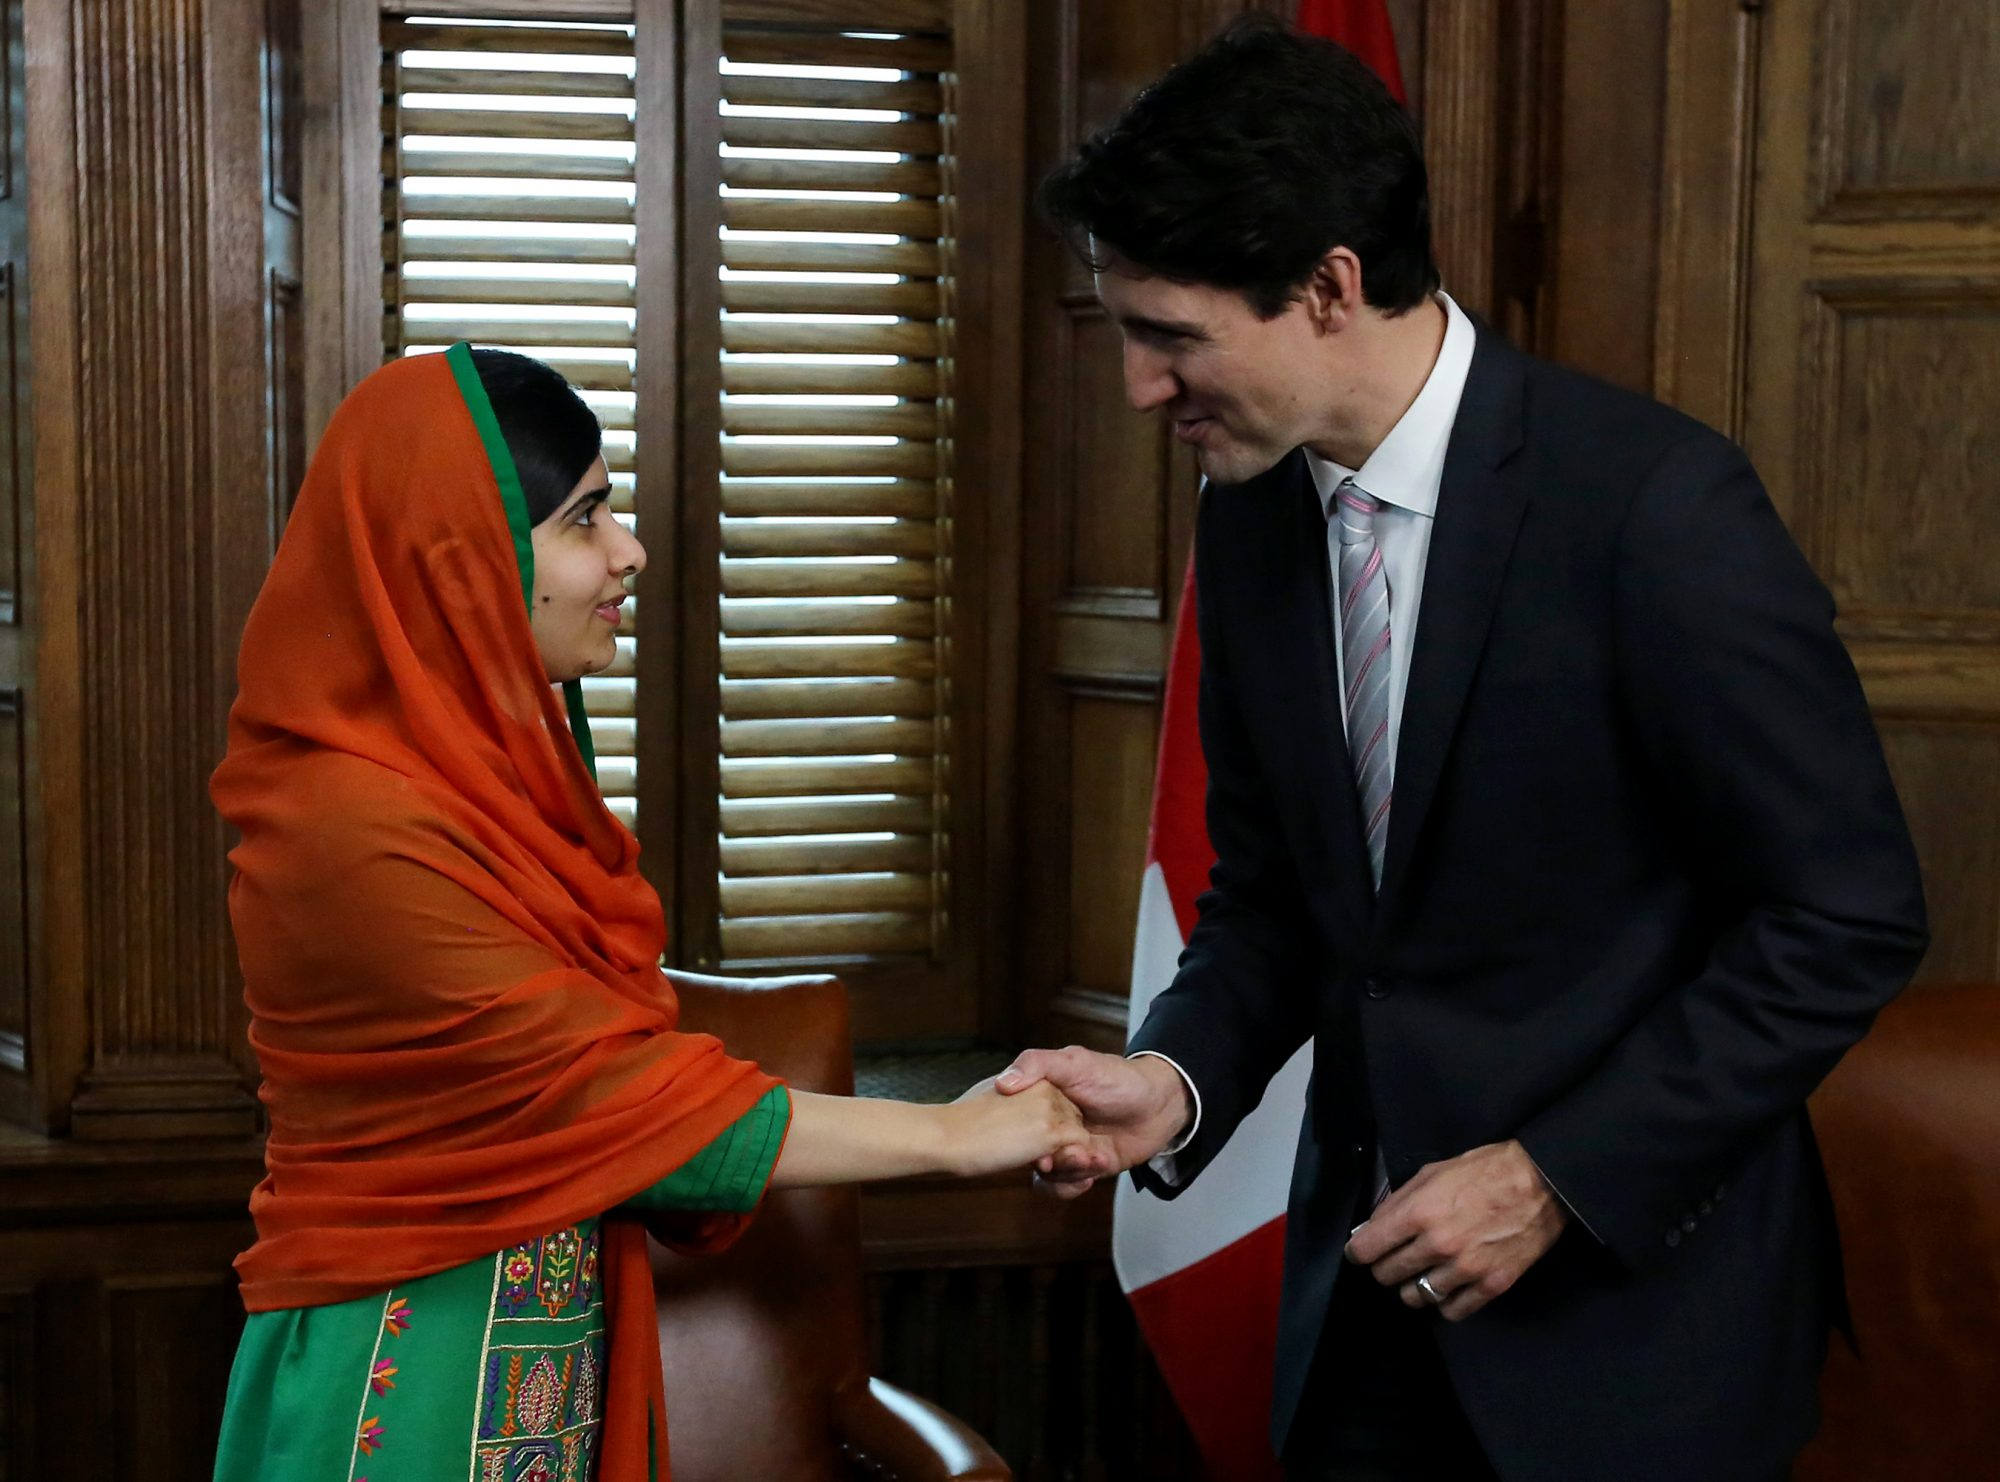 Watch Malala Yousafzai Tease Hip Canadian Prime Minister Justin Trudeau About His Tattoos